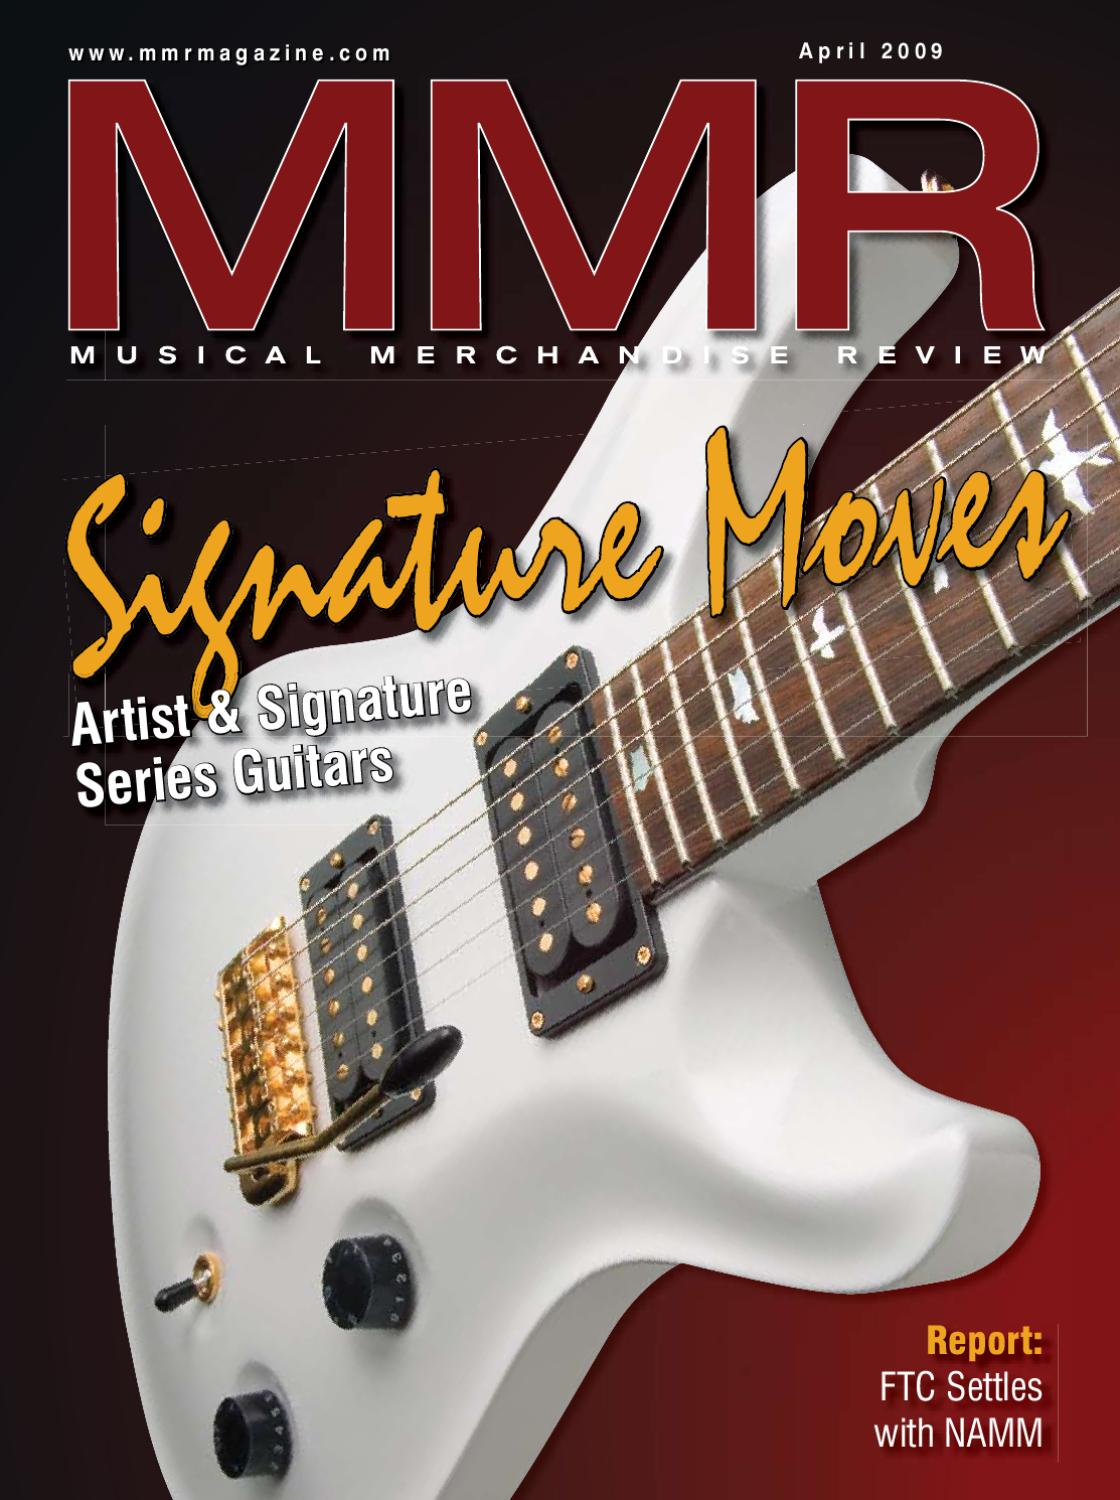 April 40 ISSUU by MMR   Musical Merchandise Review   issuu